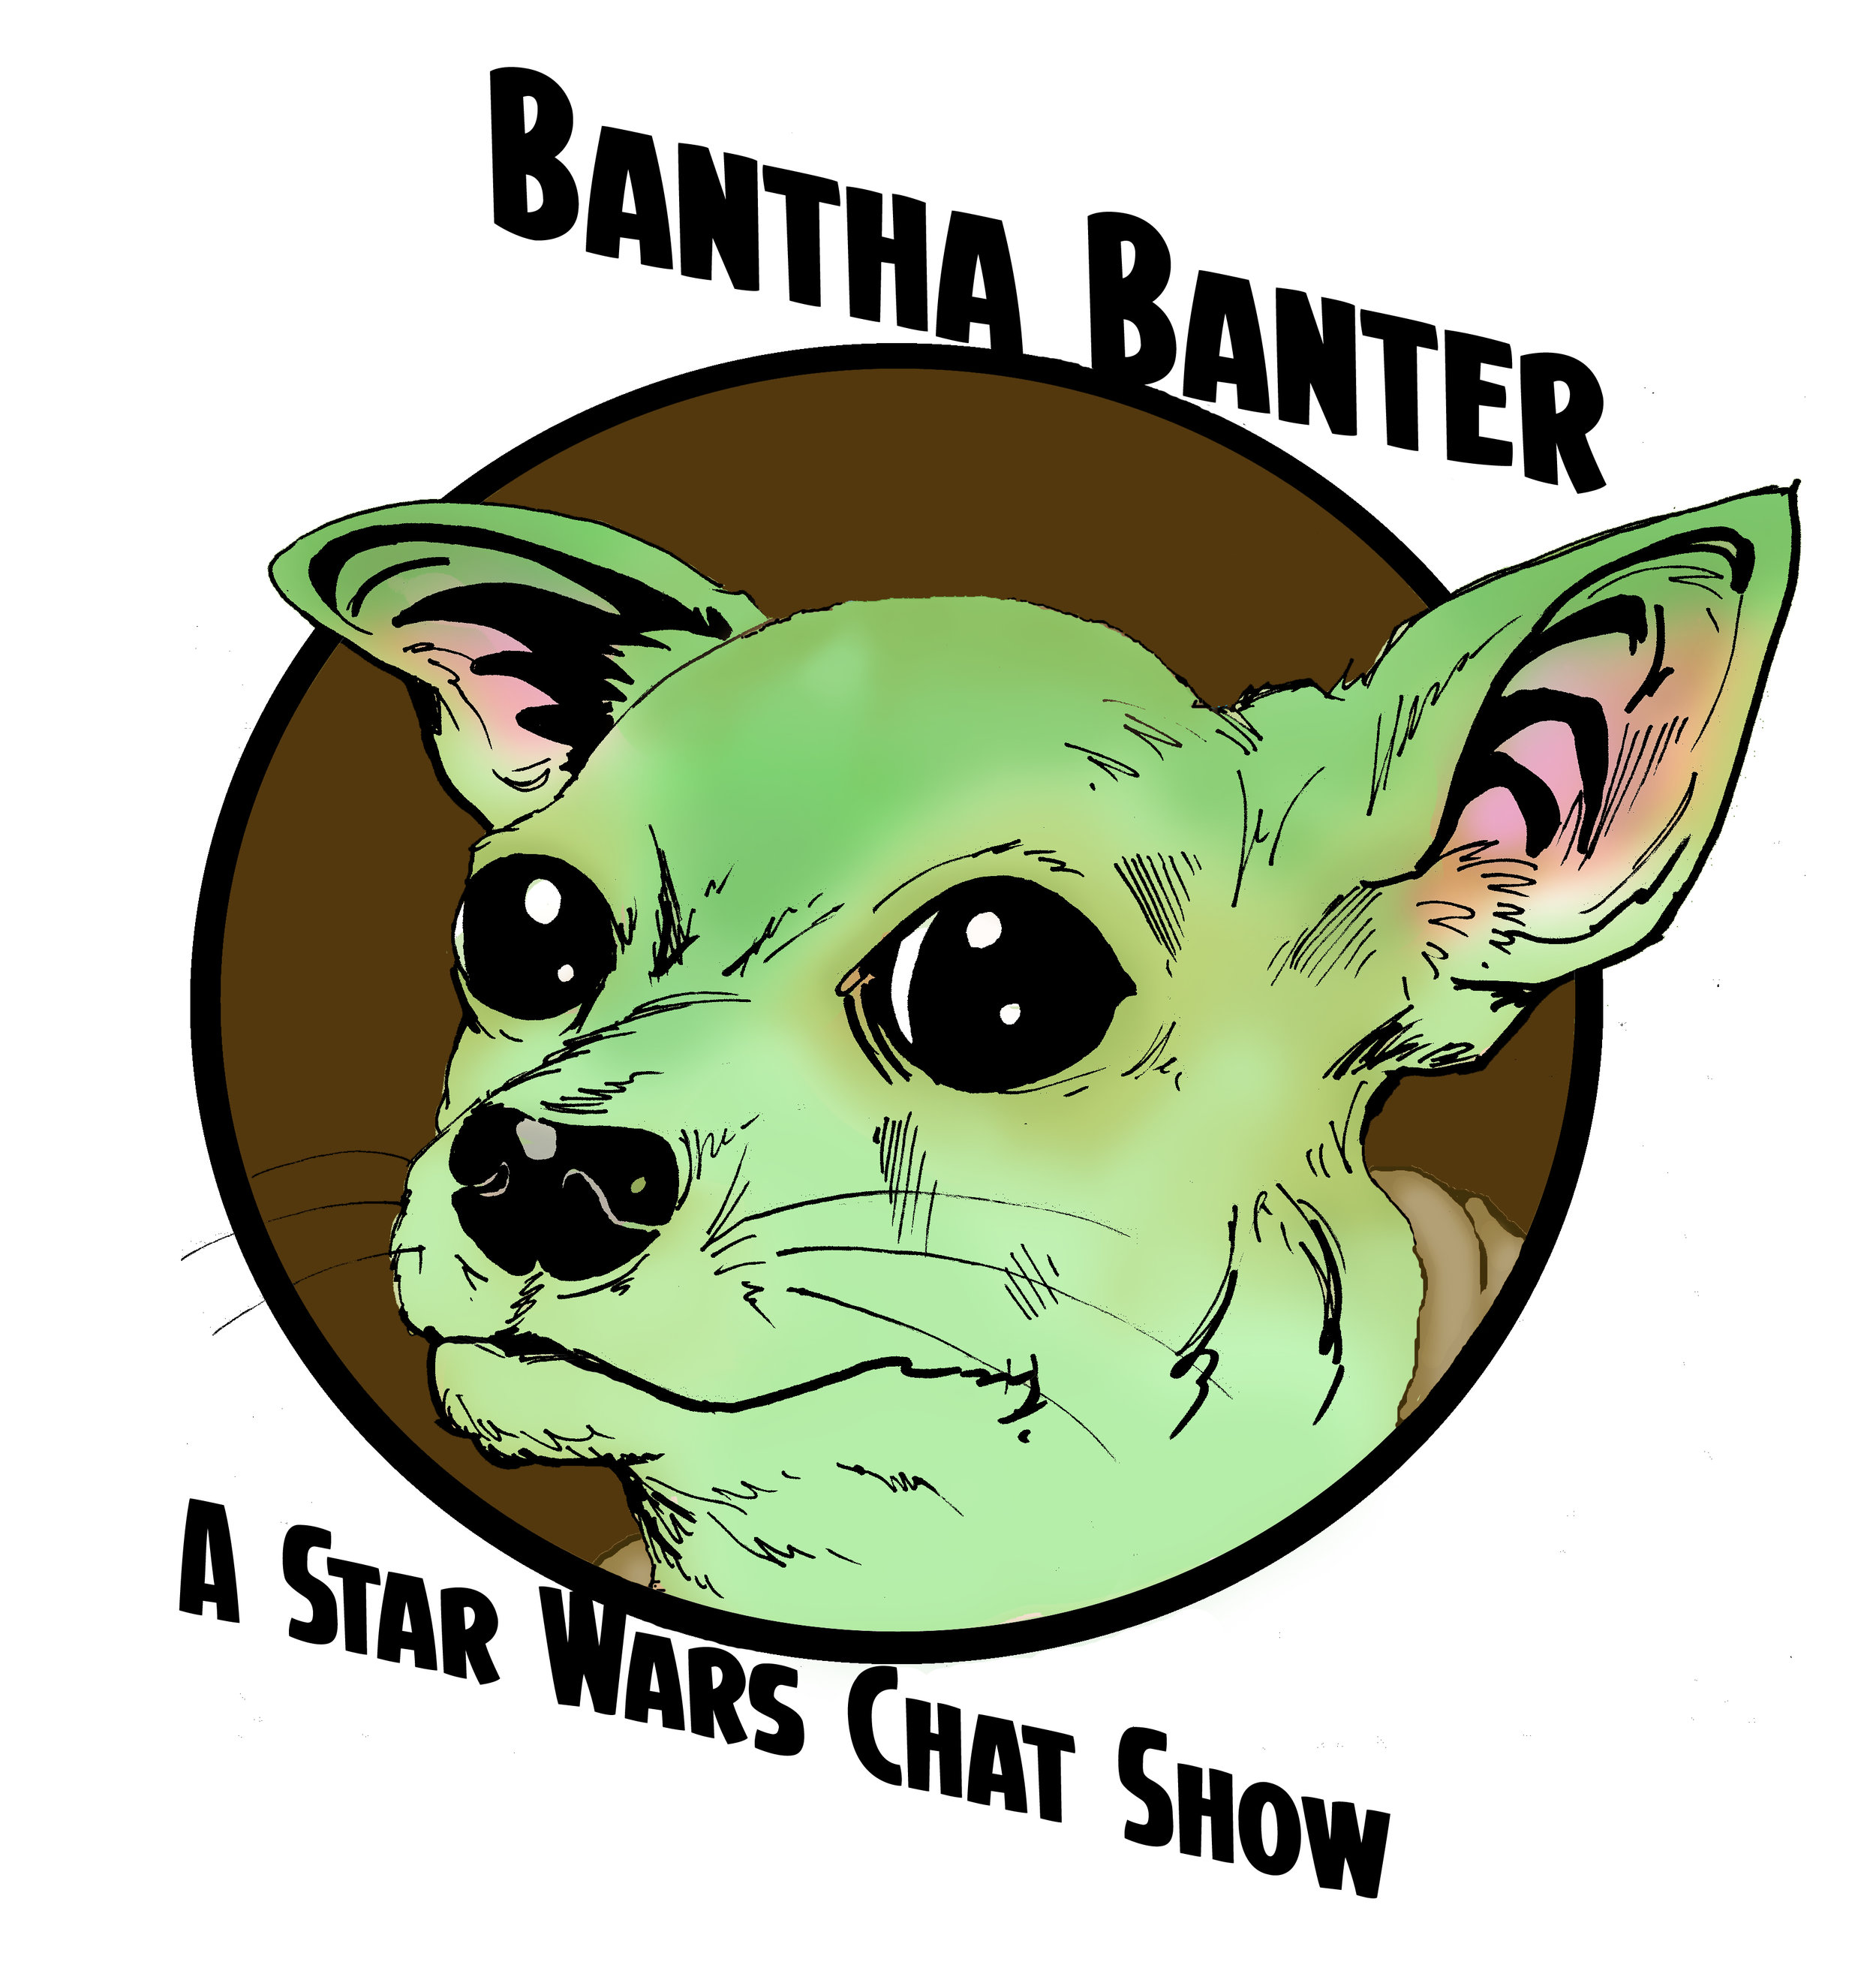 Bantha banter - Star Wars fans talk about Star Wars. It's a simple concept, but a fun show